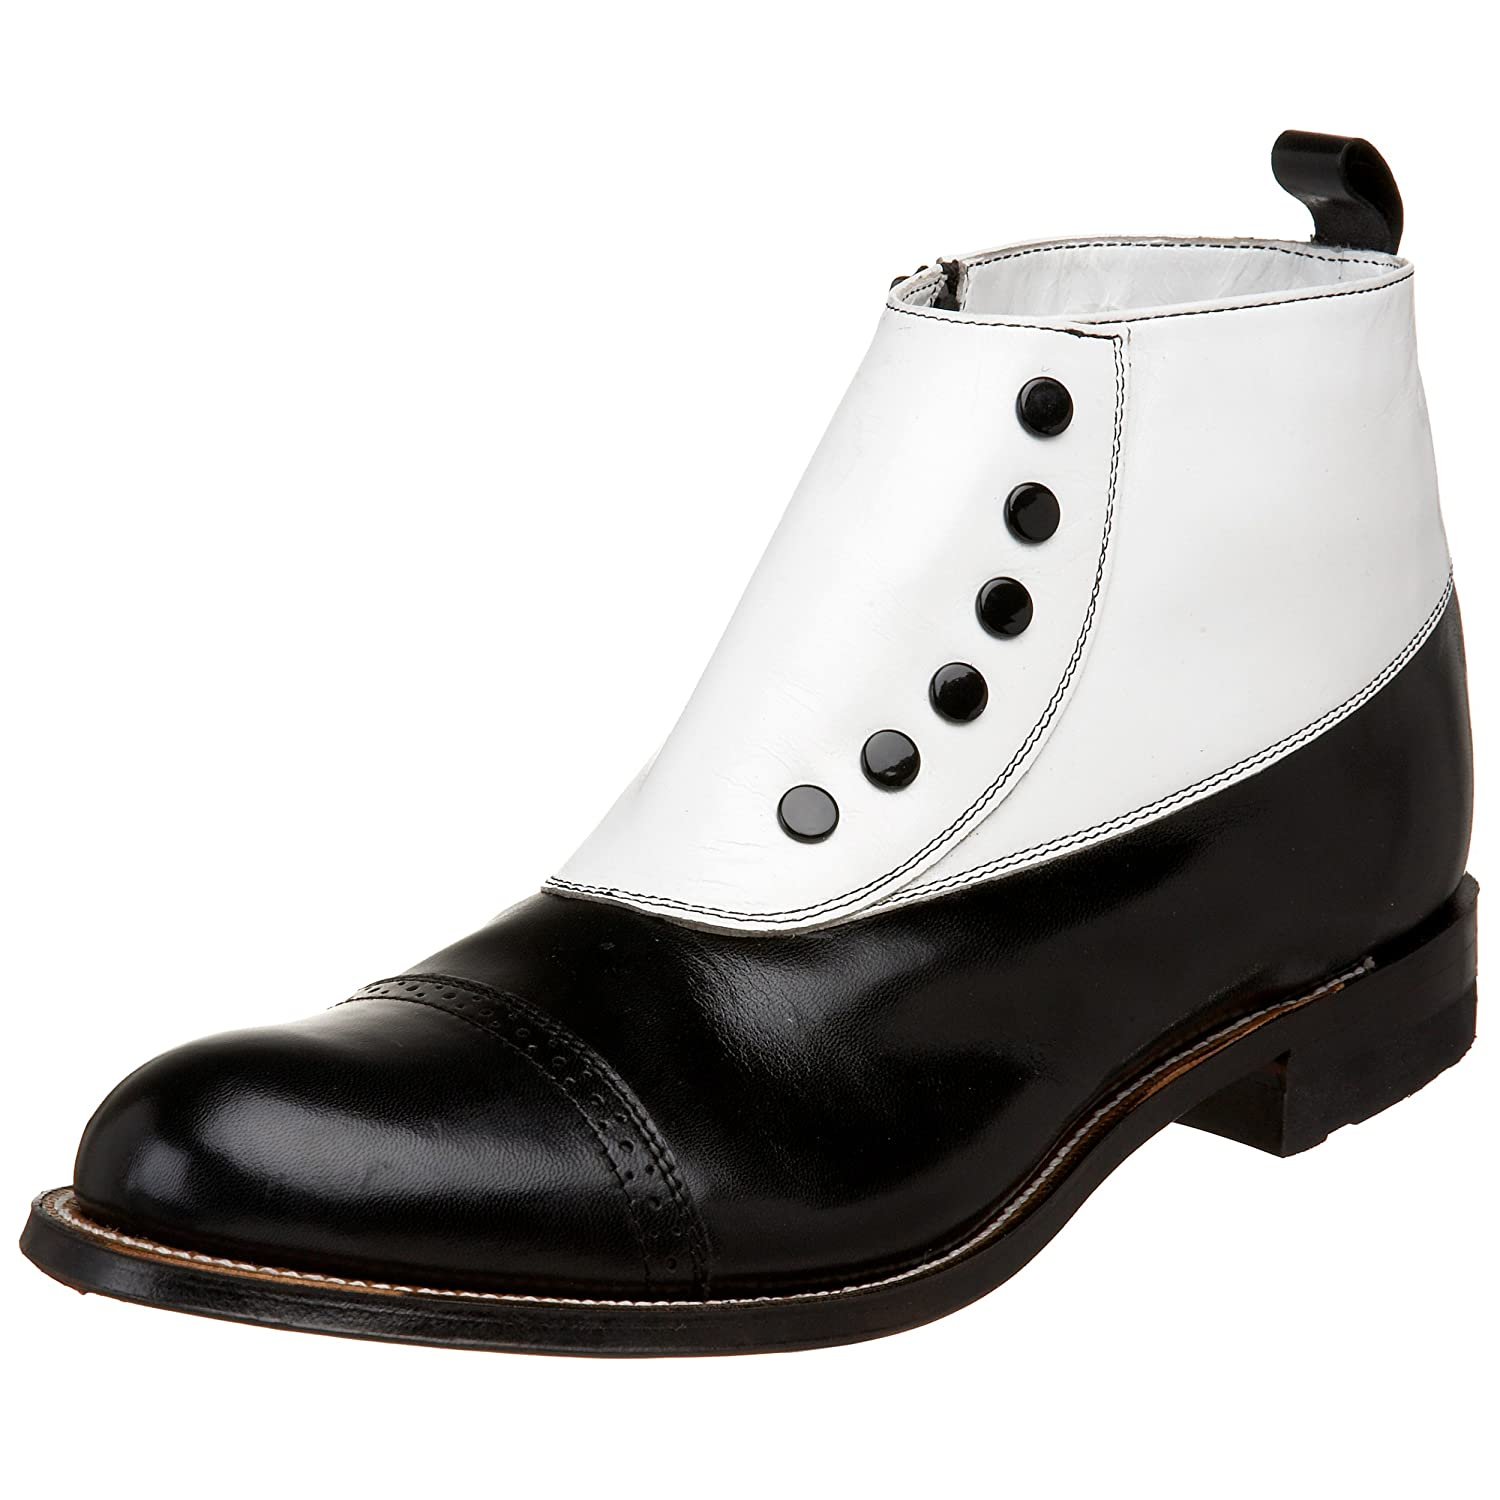 Stacy Adams Men's Victorian Boots and Shoes UK - Stacy Adams Madison Cap Toe Chukka Boot £86.53 AT vintagedancer.com